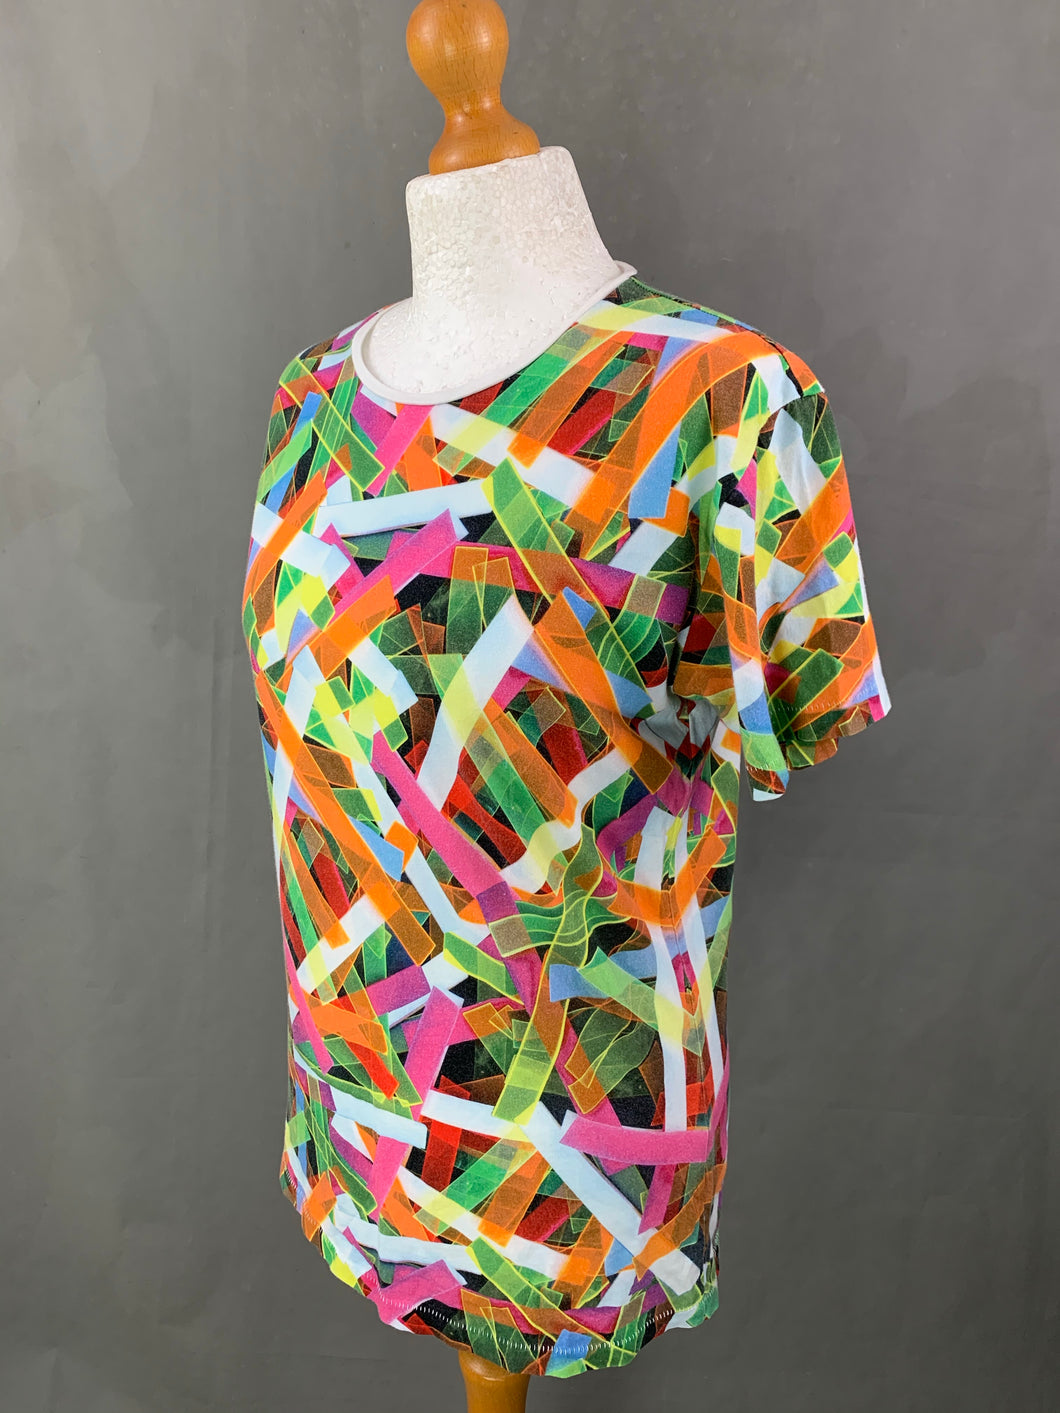 KEELY HUNTER from SELFRIDGES BRIGHT YOUNG THINGS TOP Size Small S